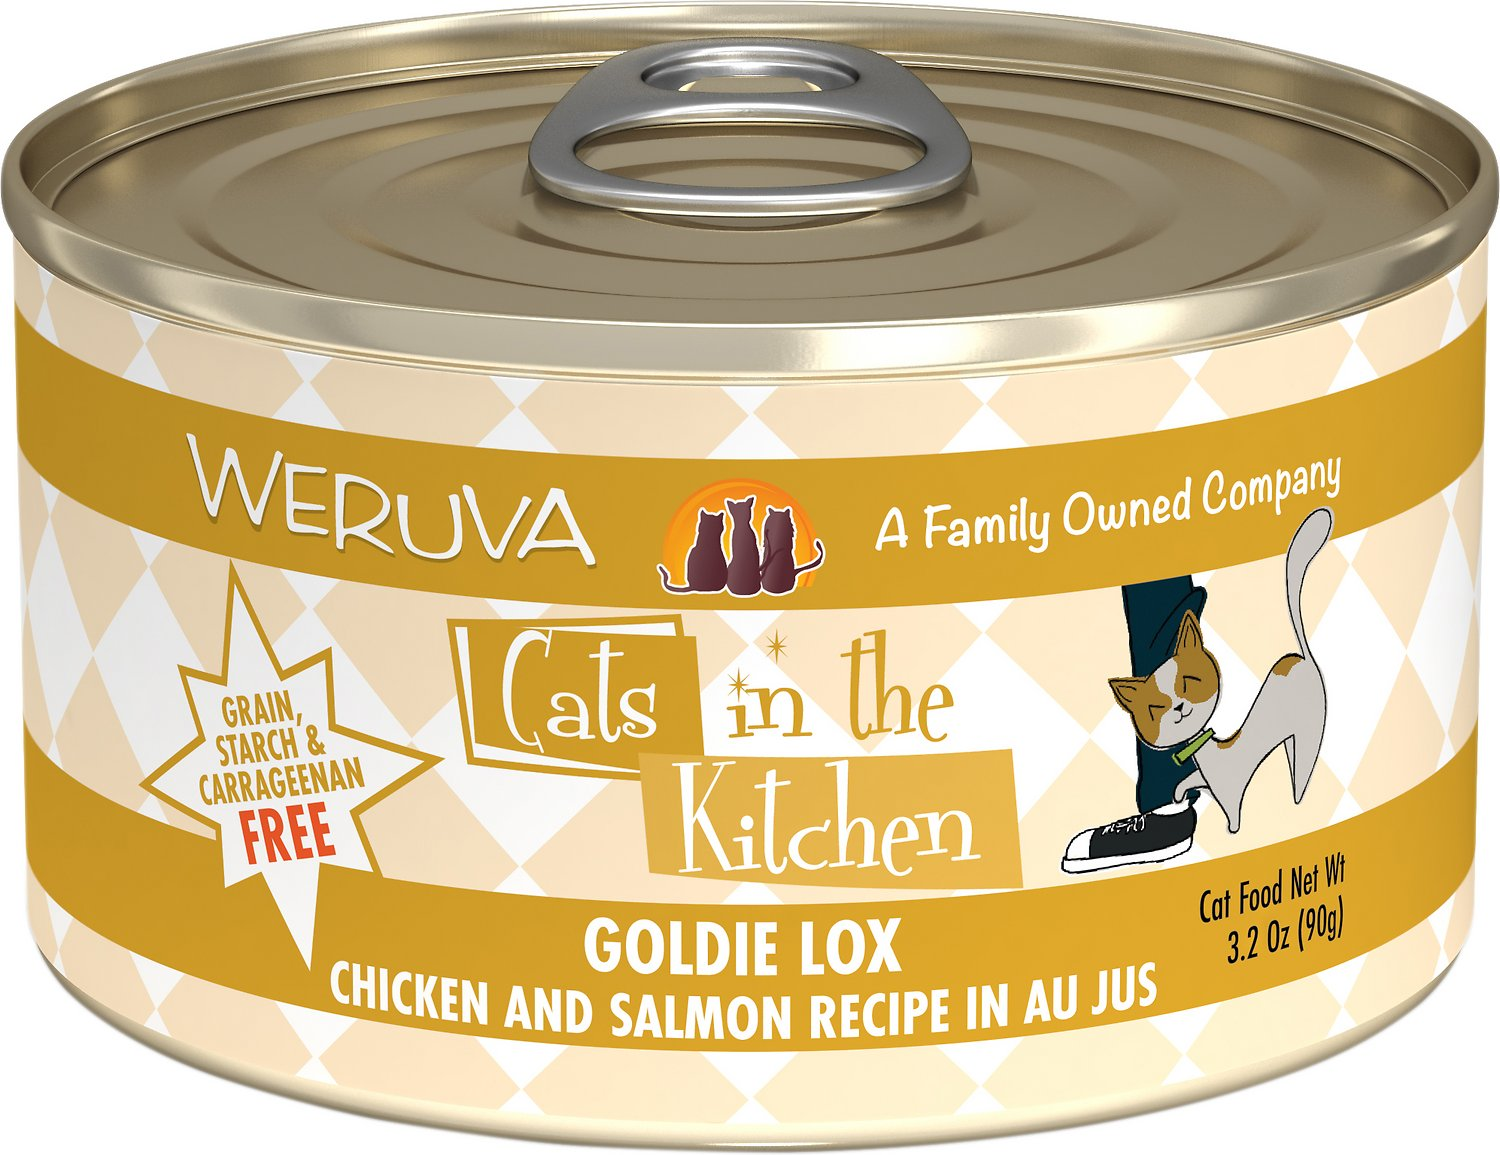 Weruva Cats in the Kitchen Goldie Lox Chicken & Salmon Au Jus Grain-Free Wet Cat Food, 3.2-oz